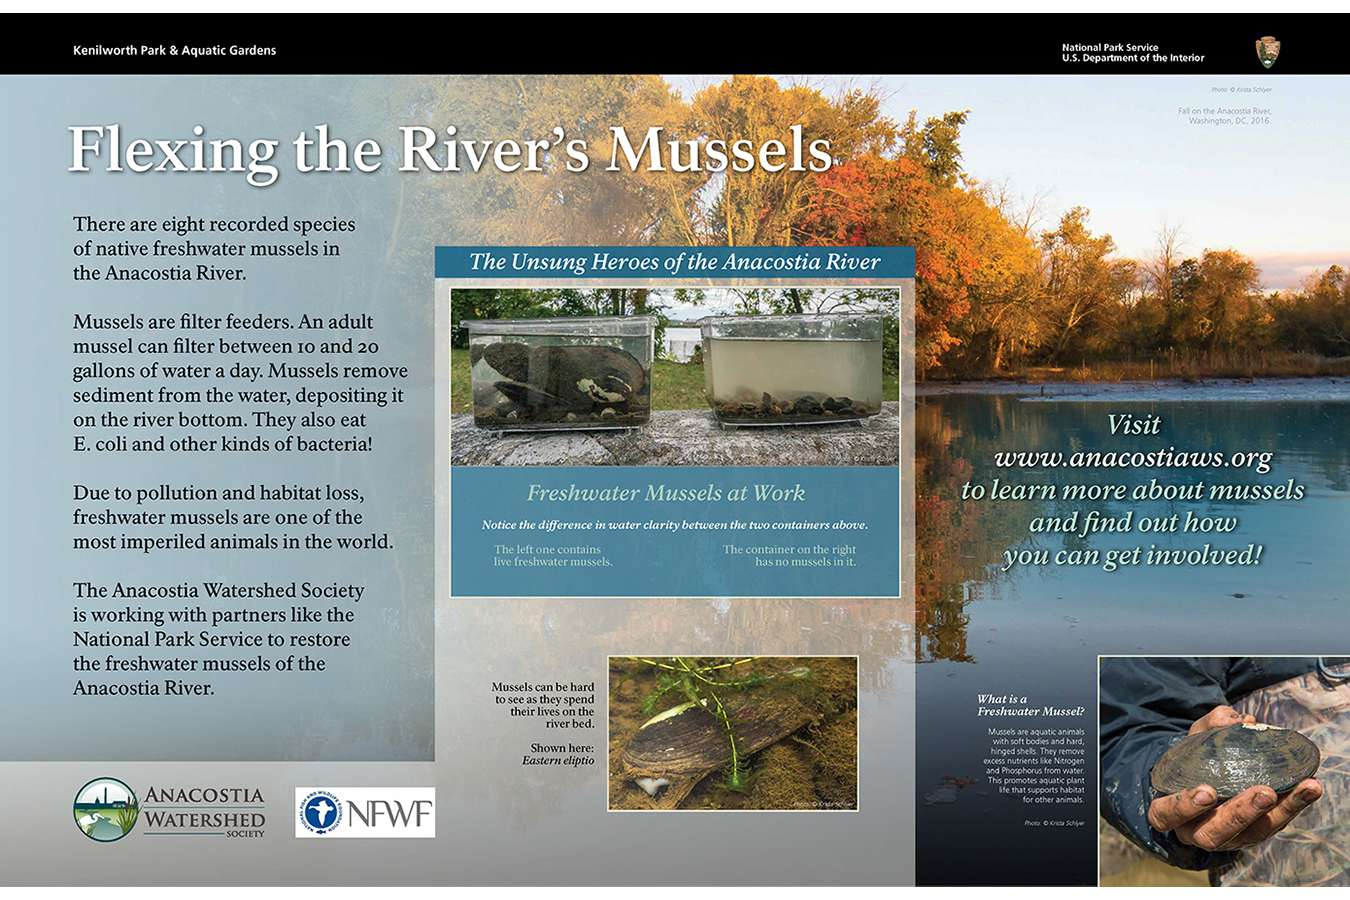 ANACOST WS 1 : Anacostia Watershed Society grows mussels in the Anacostia river to improve water quality